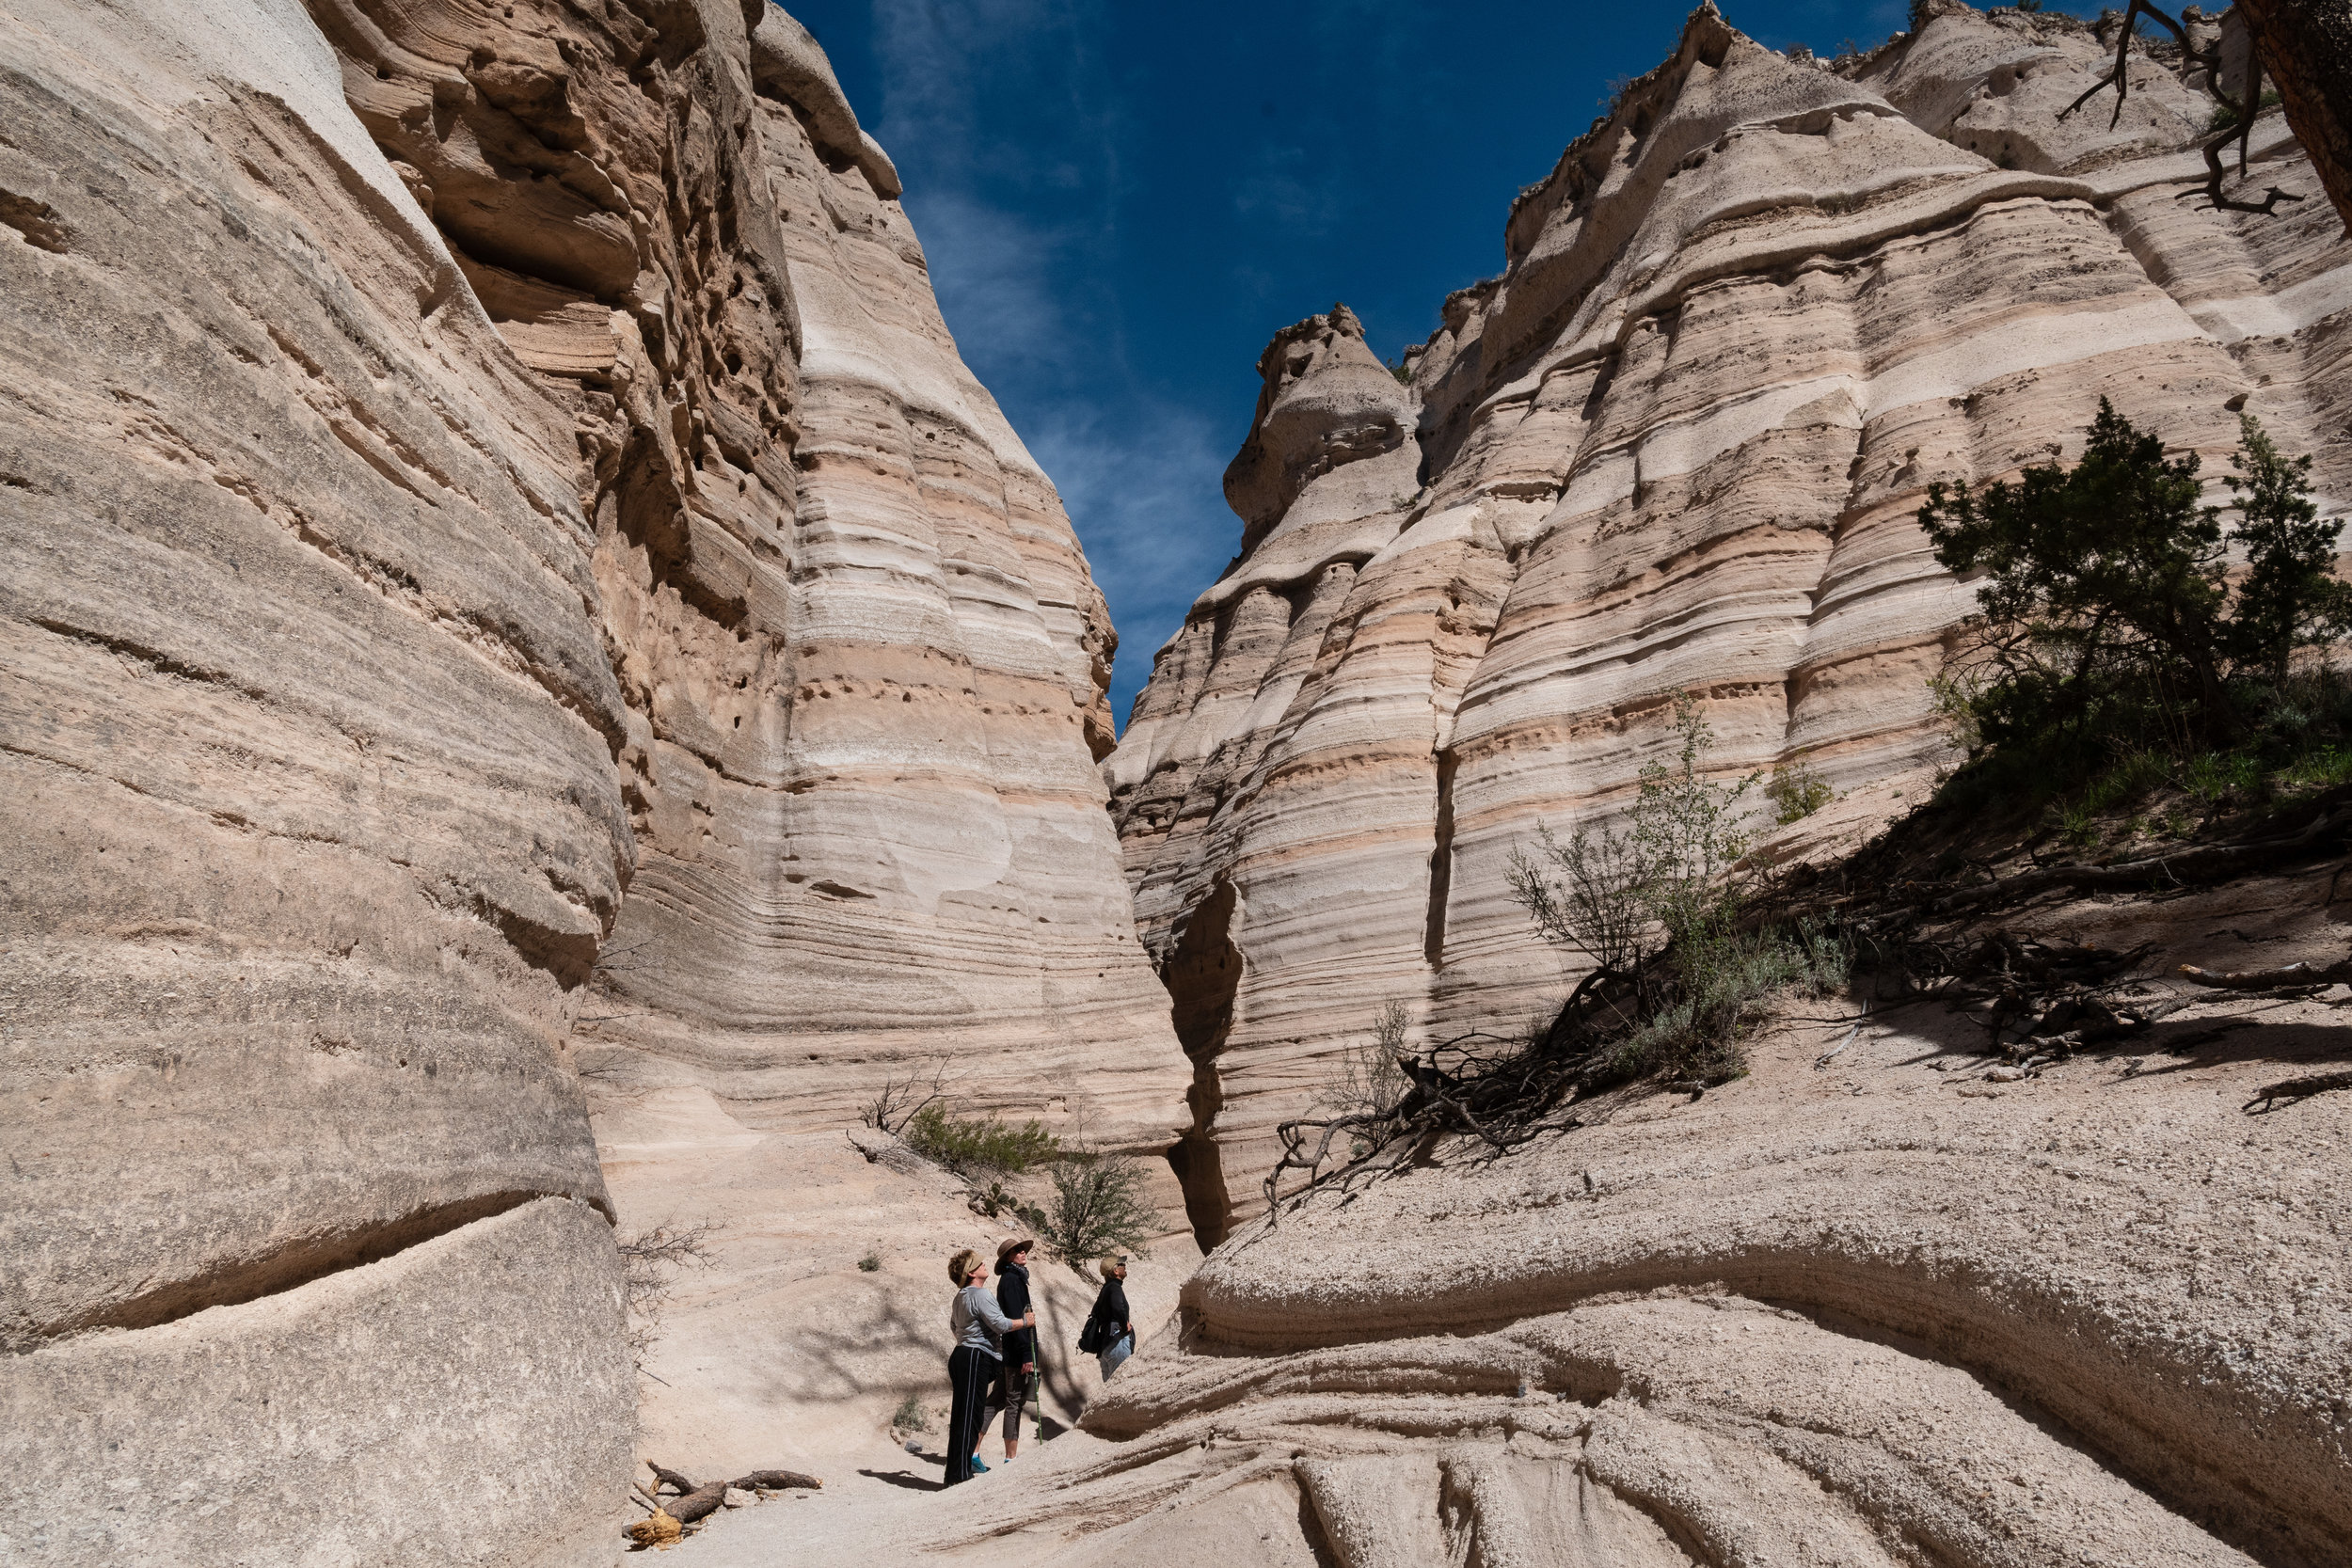 Kasha-Katuwe tent rocks - The result of volcanic eruptions that occurred six to seven million years ago, these cone-shaped rock formations are a must-see stop between Santa Fe and Albuquerque, New Mexico.